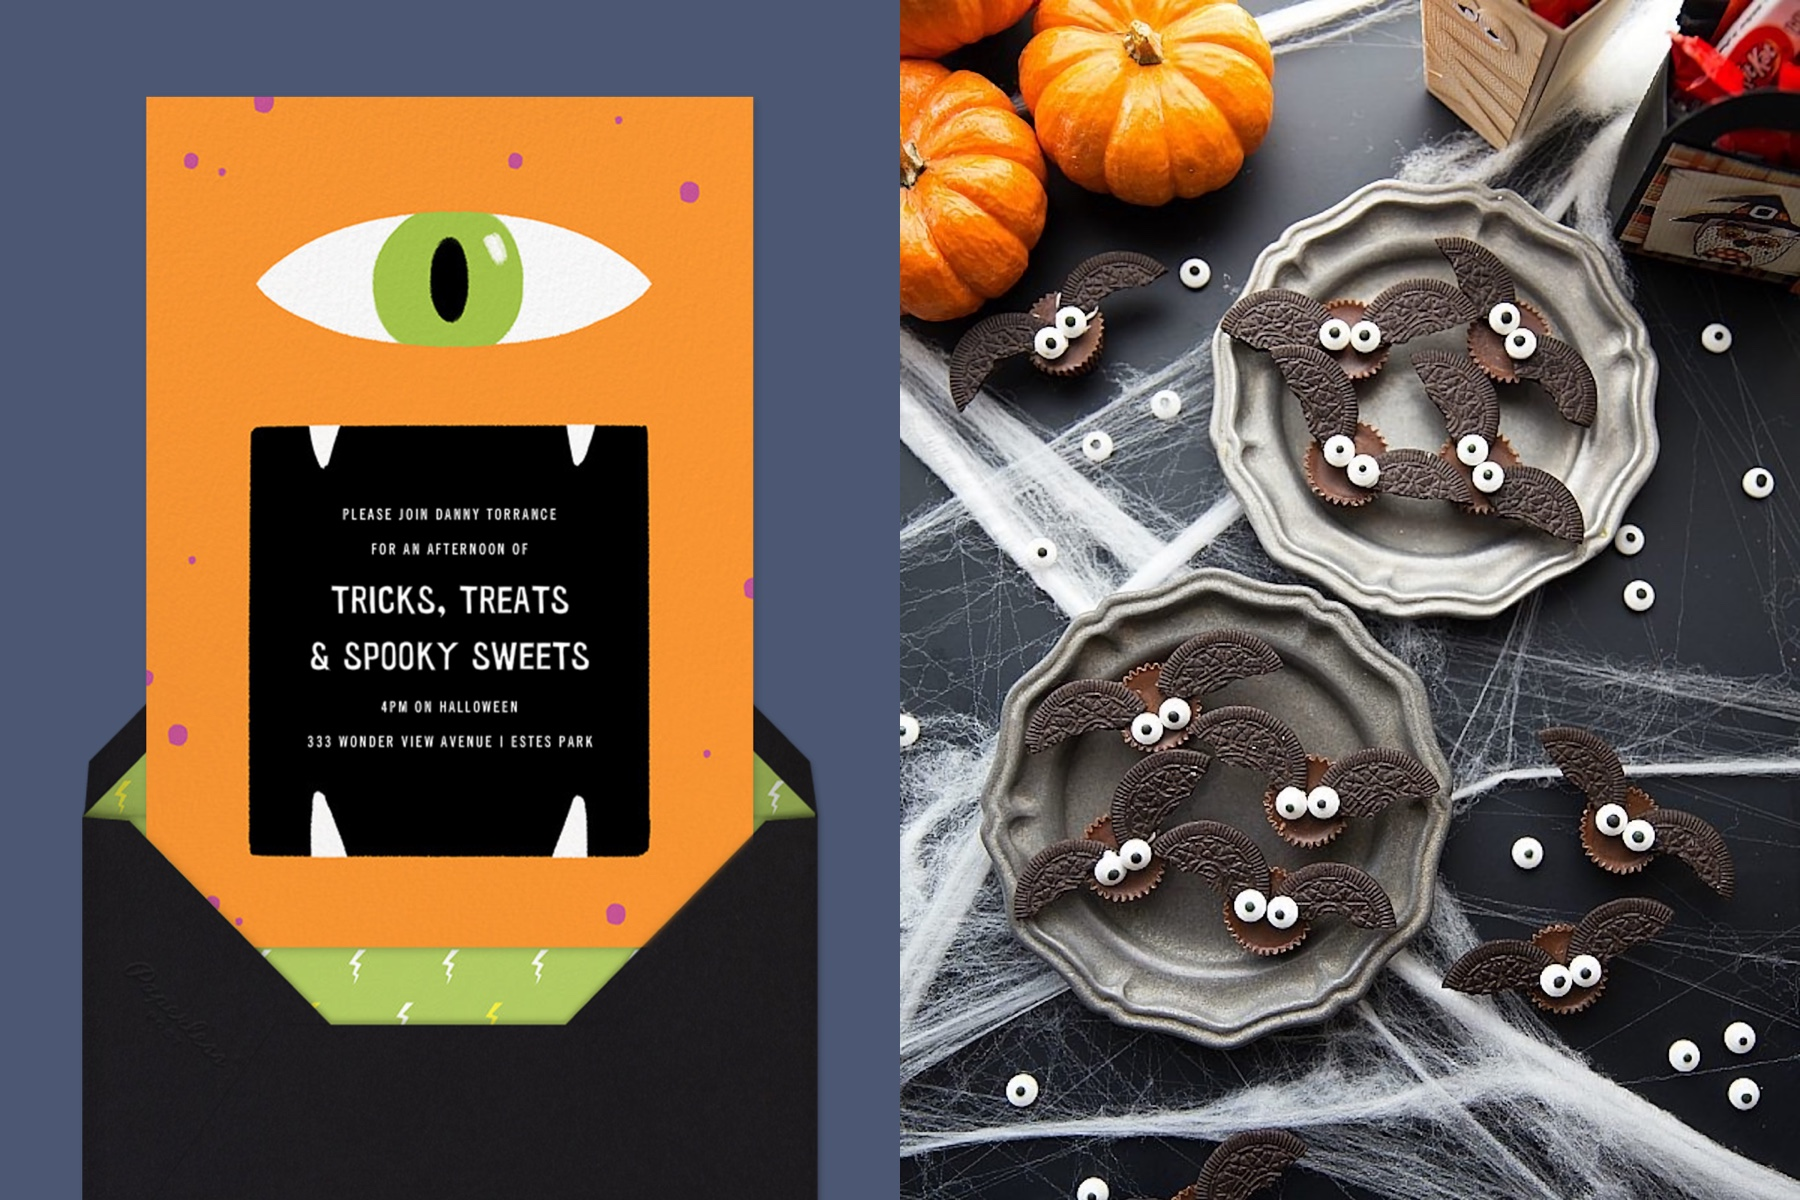 """Left: """"Hungry Eye"""" invitation by Paperless Post. The orange card features an illustration of a cyclops monster's face with the text in its gaping mouth. The card appears on a dark blue background   Right: Homemade Halloween Treats featuring bats made out of peanut butter cups and Oreos. Photo Credit: Chelsea's Messy Apron"""